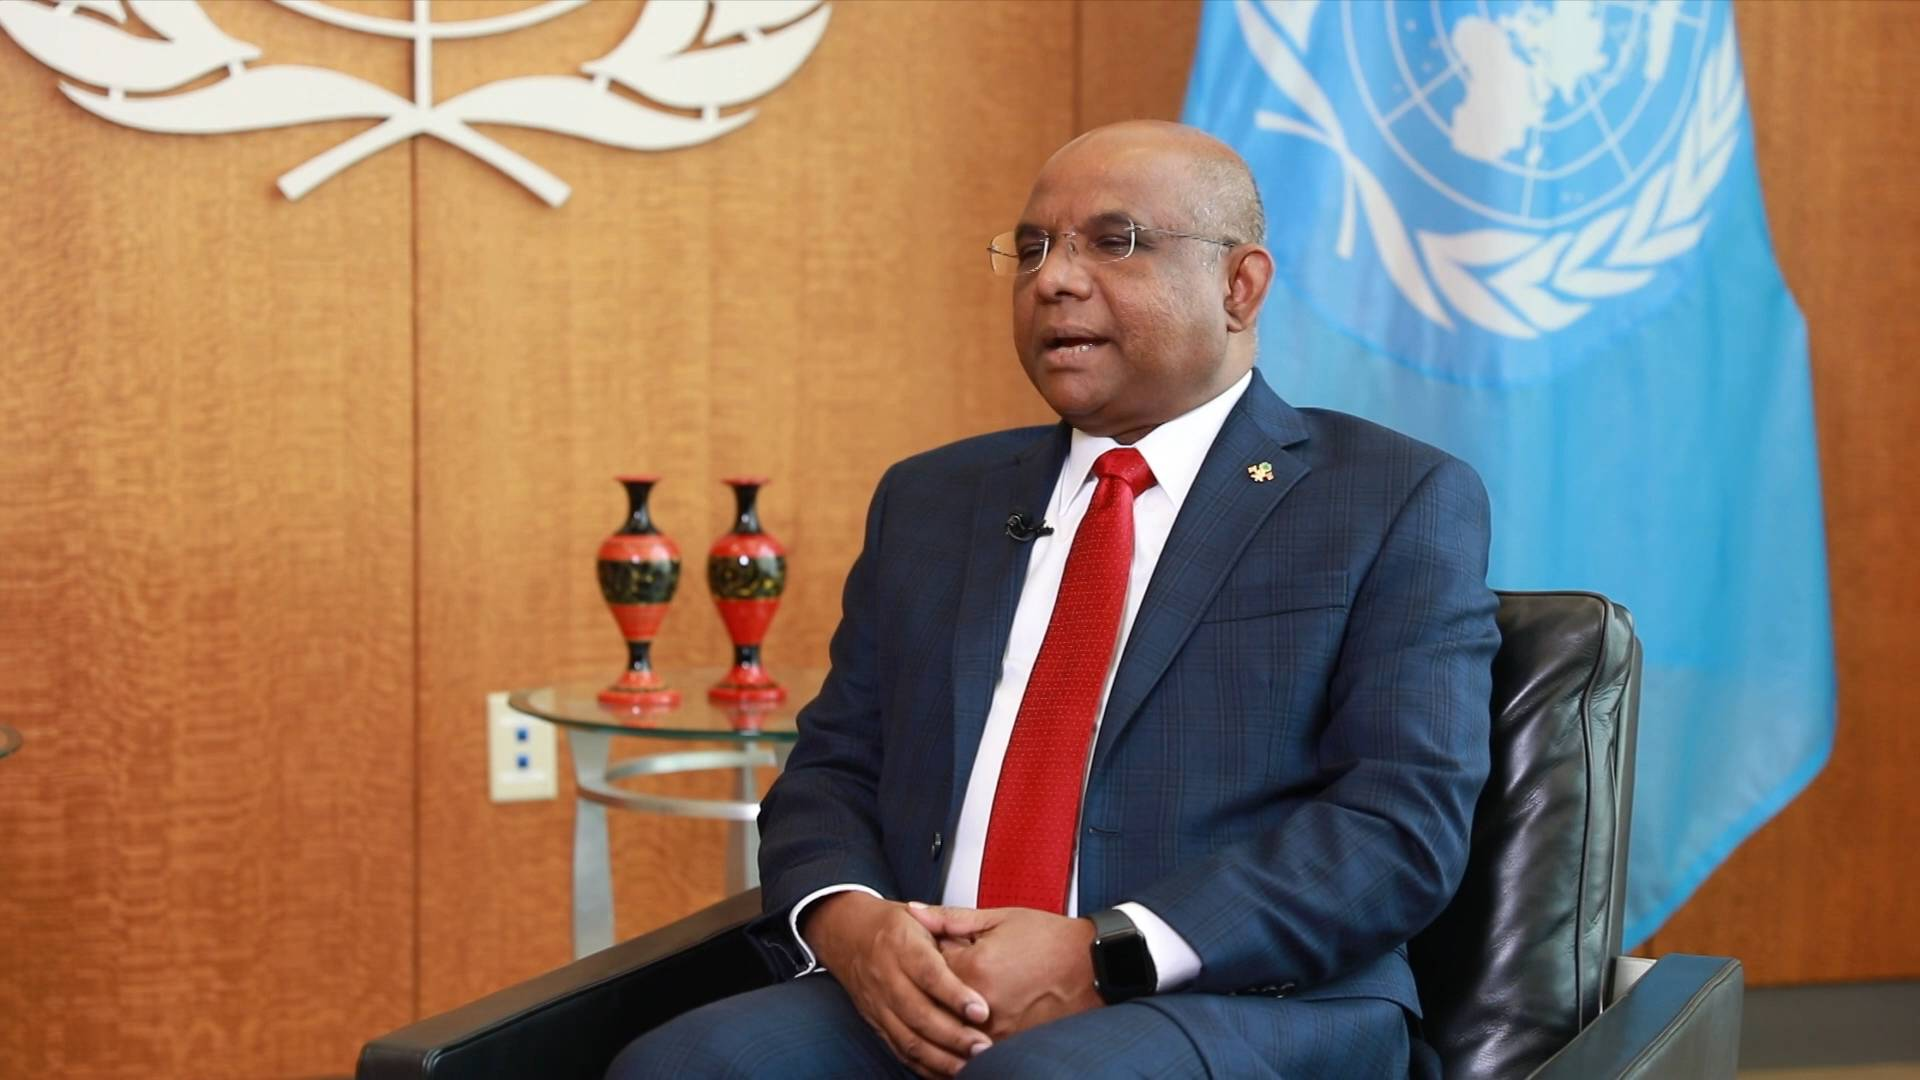 GLOBALink | China plays crucial role in multilateralism: UNGA president